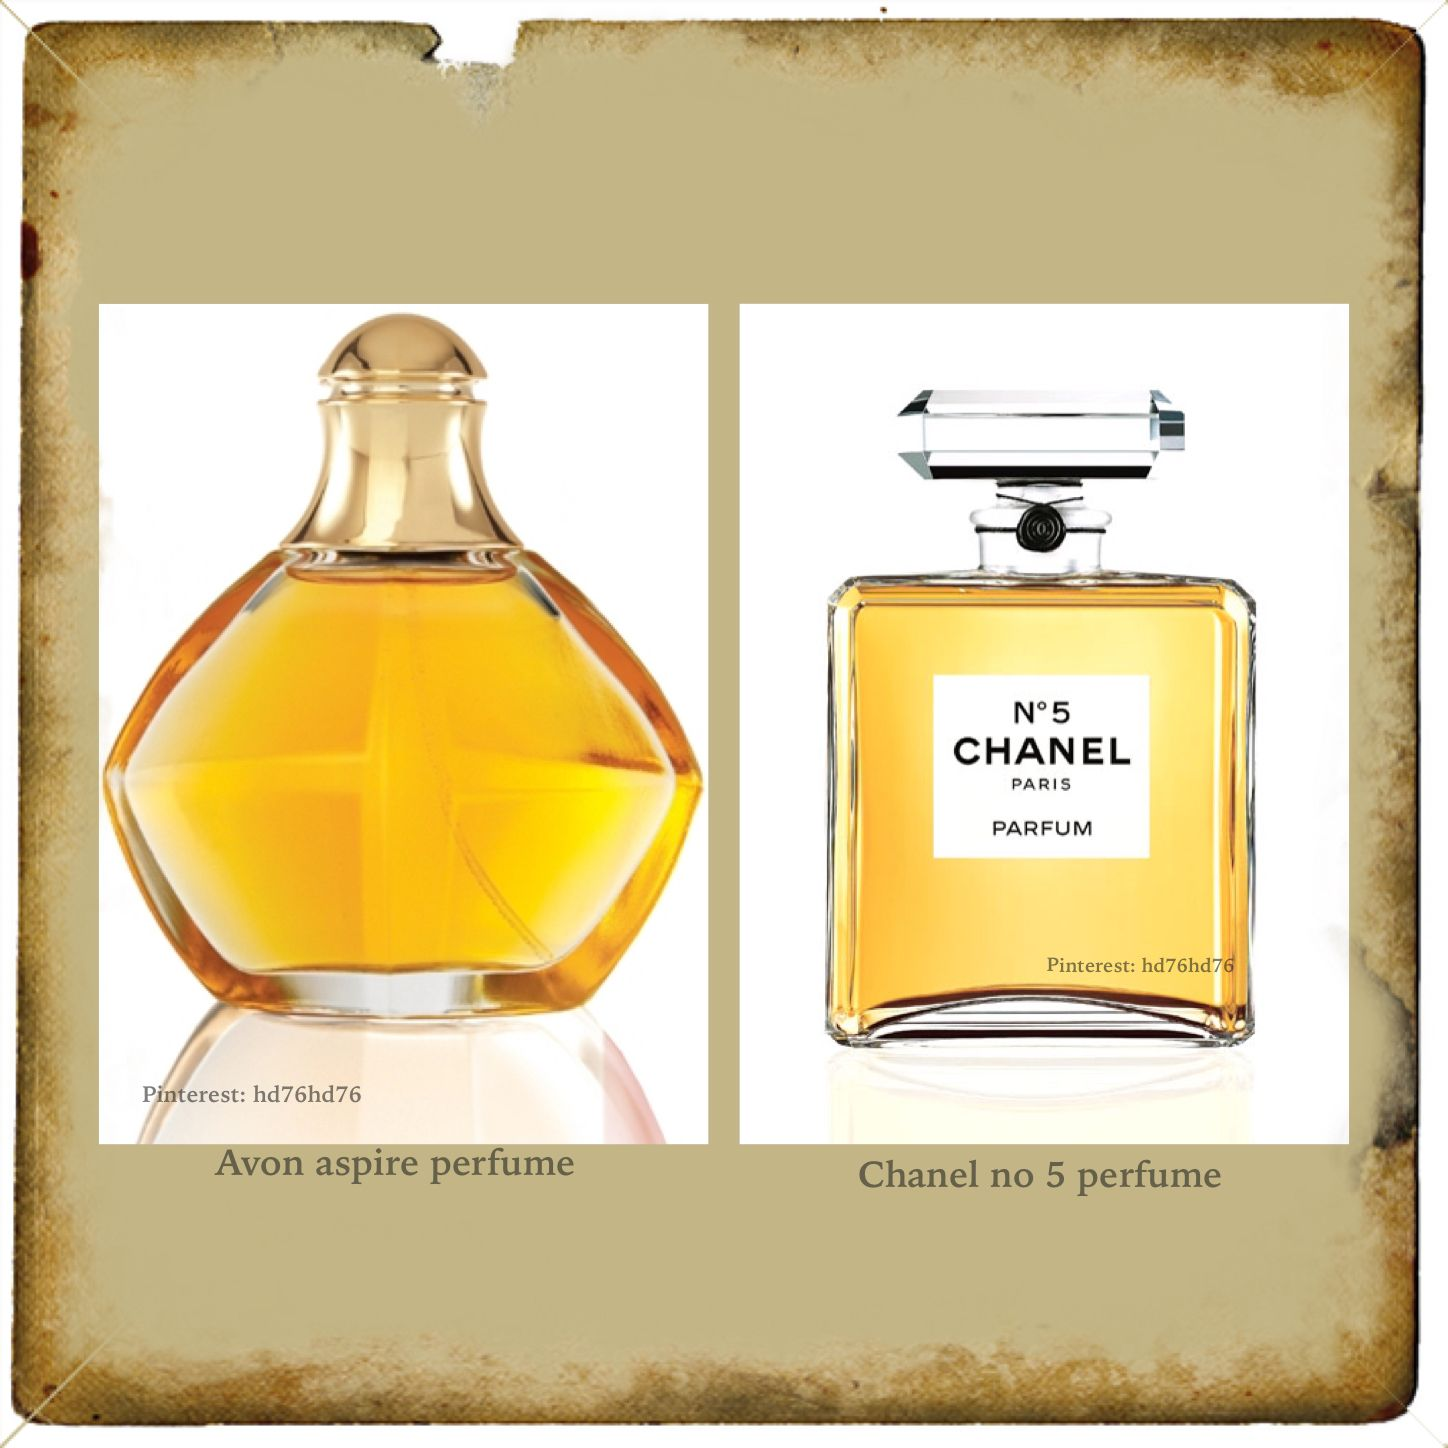 c39eed701c Avon aspire perfume is similar to chanel no 5 | Chanel Fragrance in ...